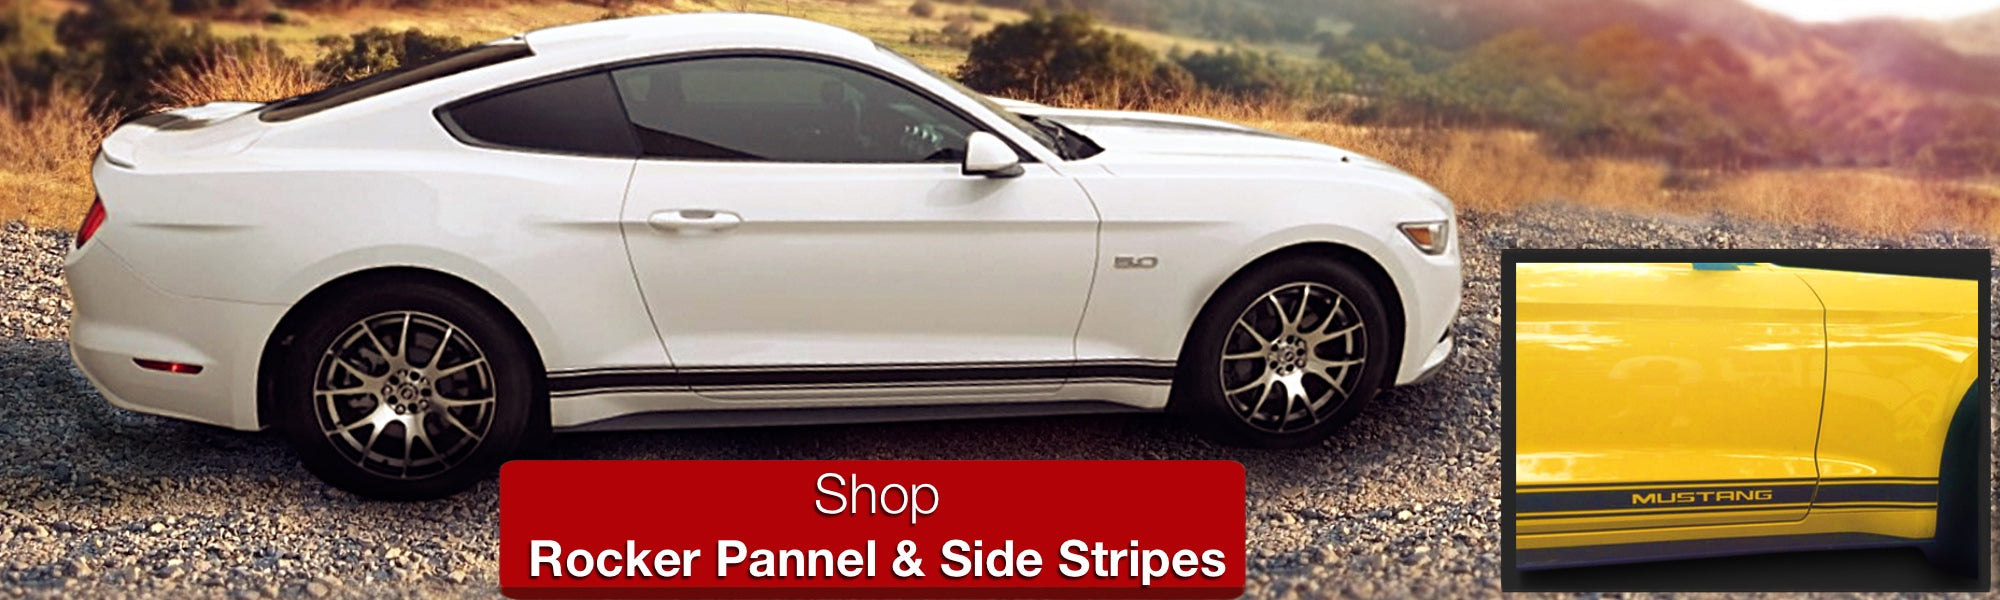 Side Stripes Matte Black OEM Style Rocker pannel Decals Vinyl on yellow white mustang 2015 2016 2017 2018